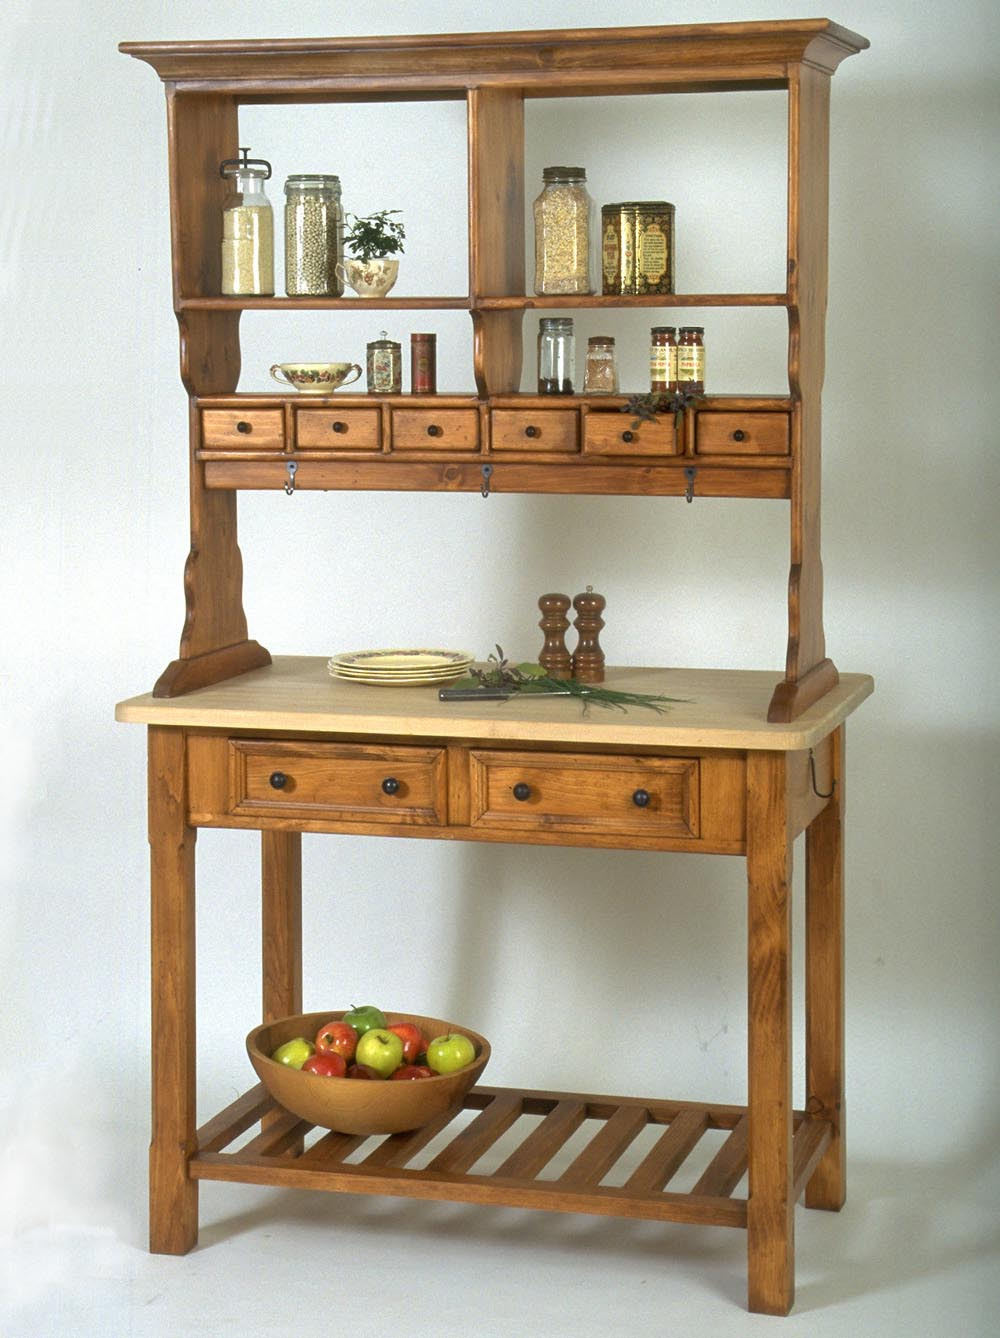 kitchen workbench freestanding pantry southern pine w butcher block top american country